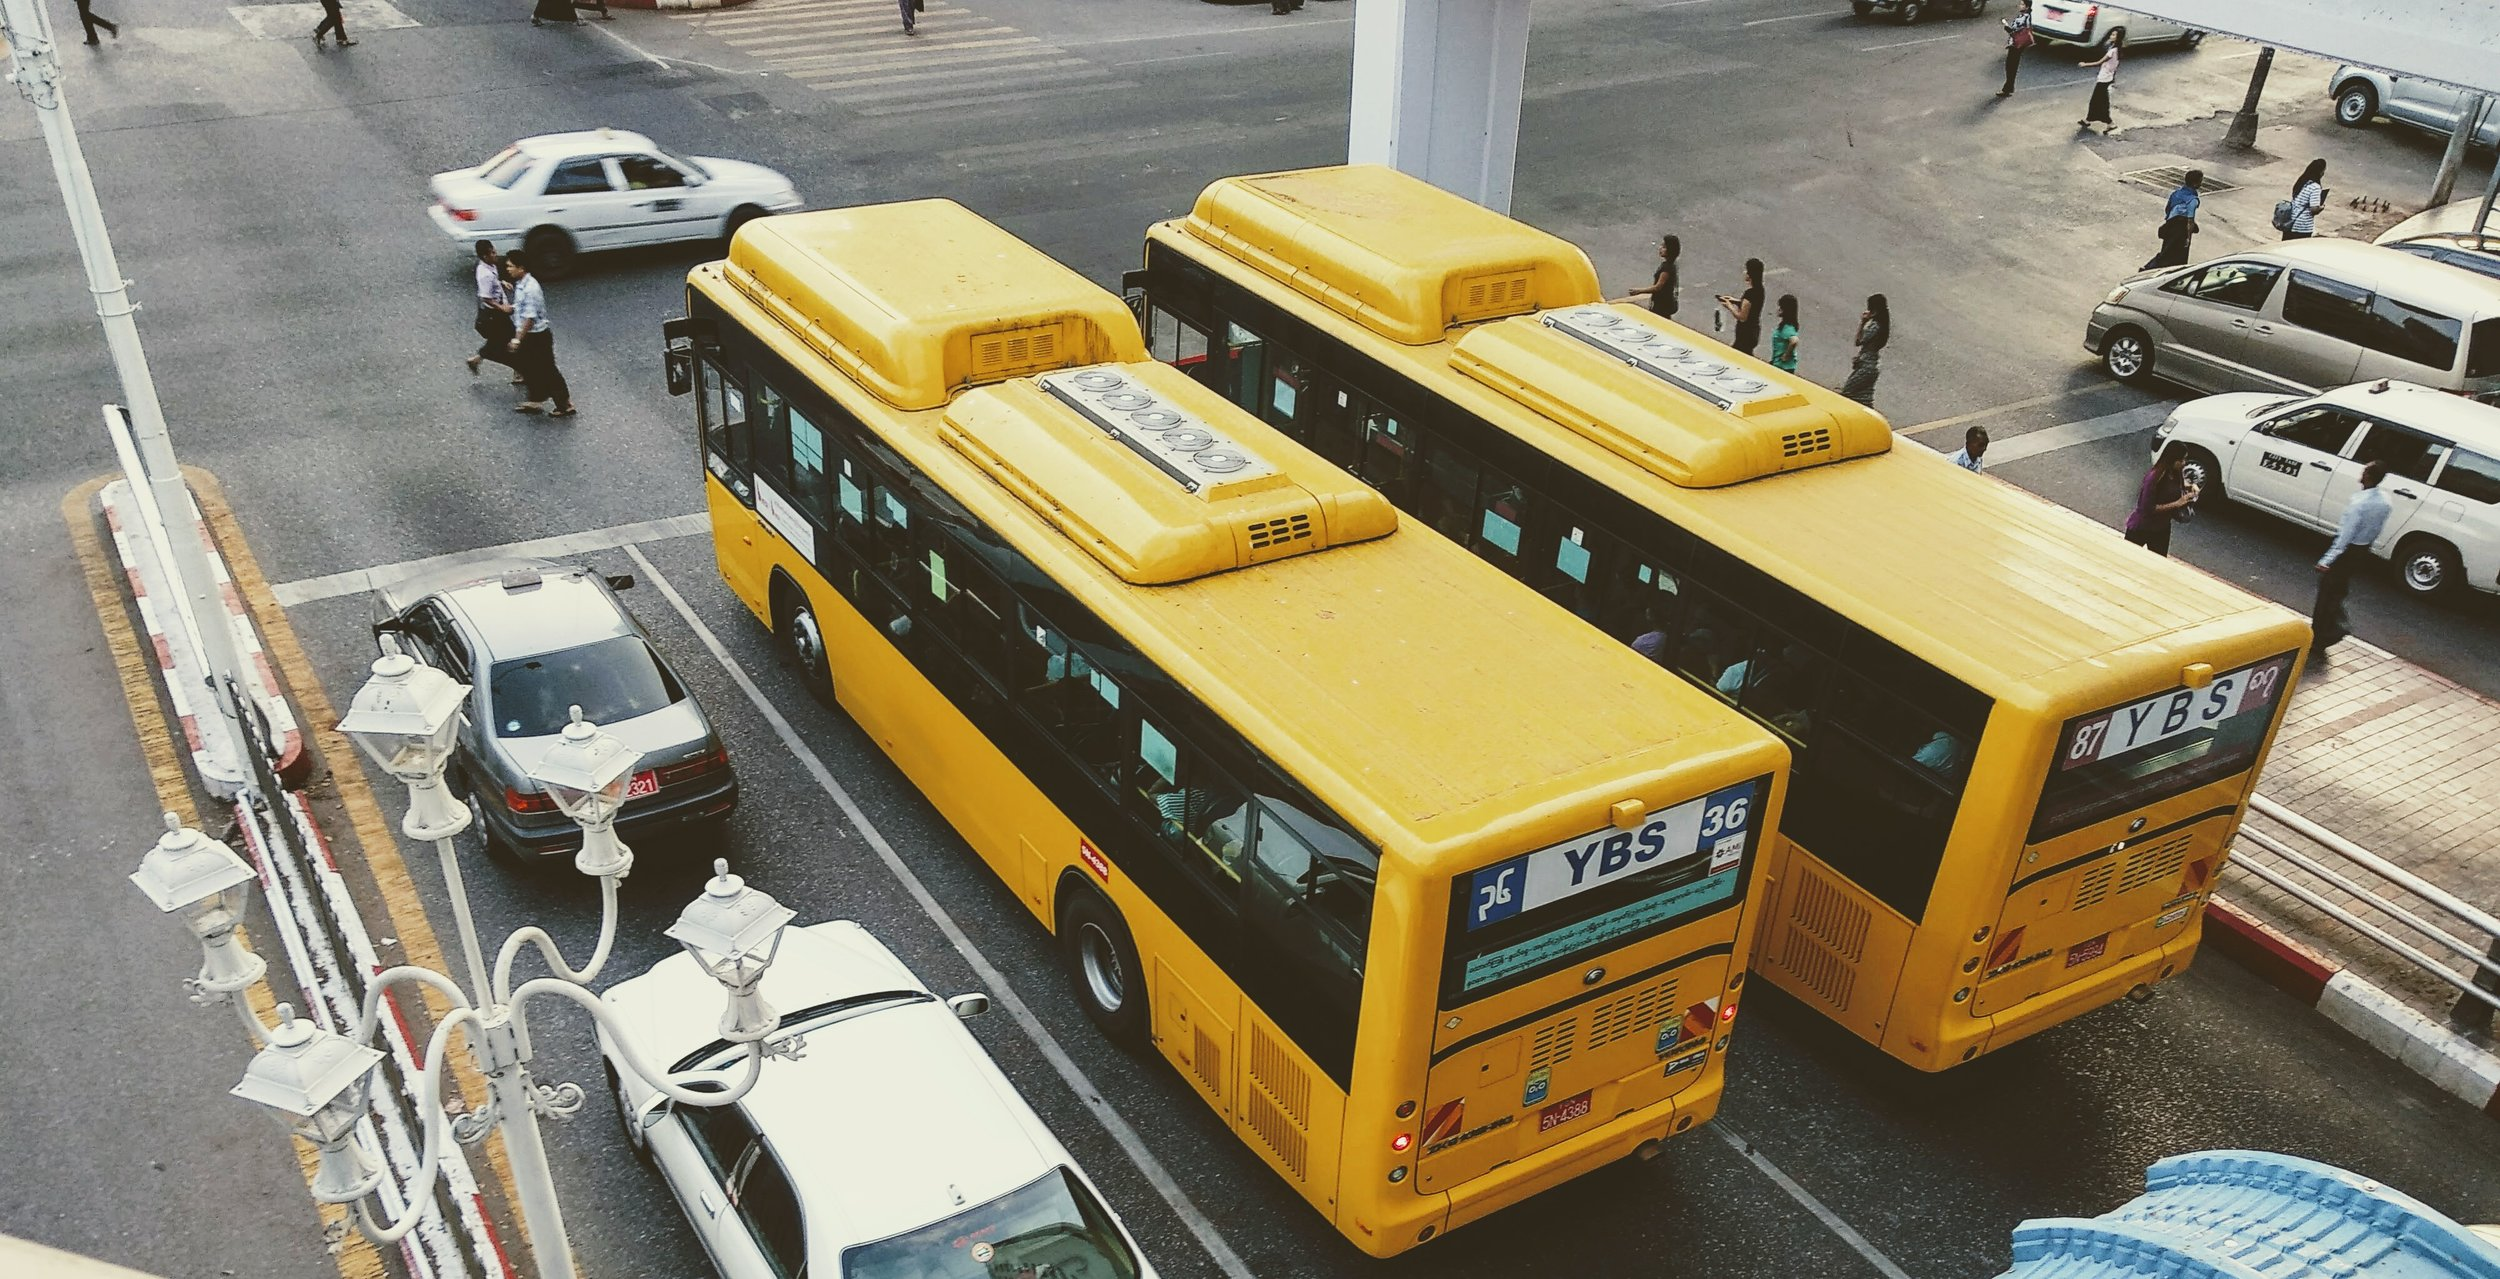 two buses at a city intersection